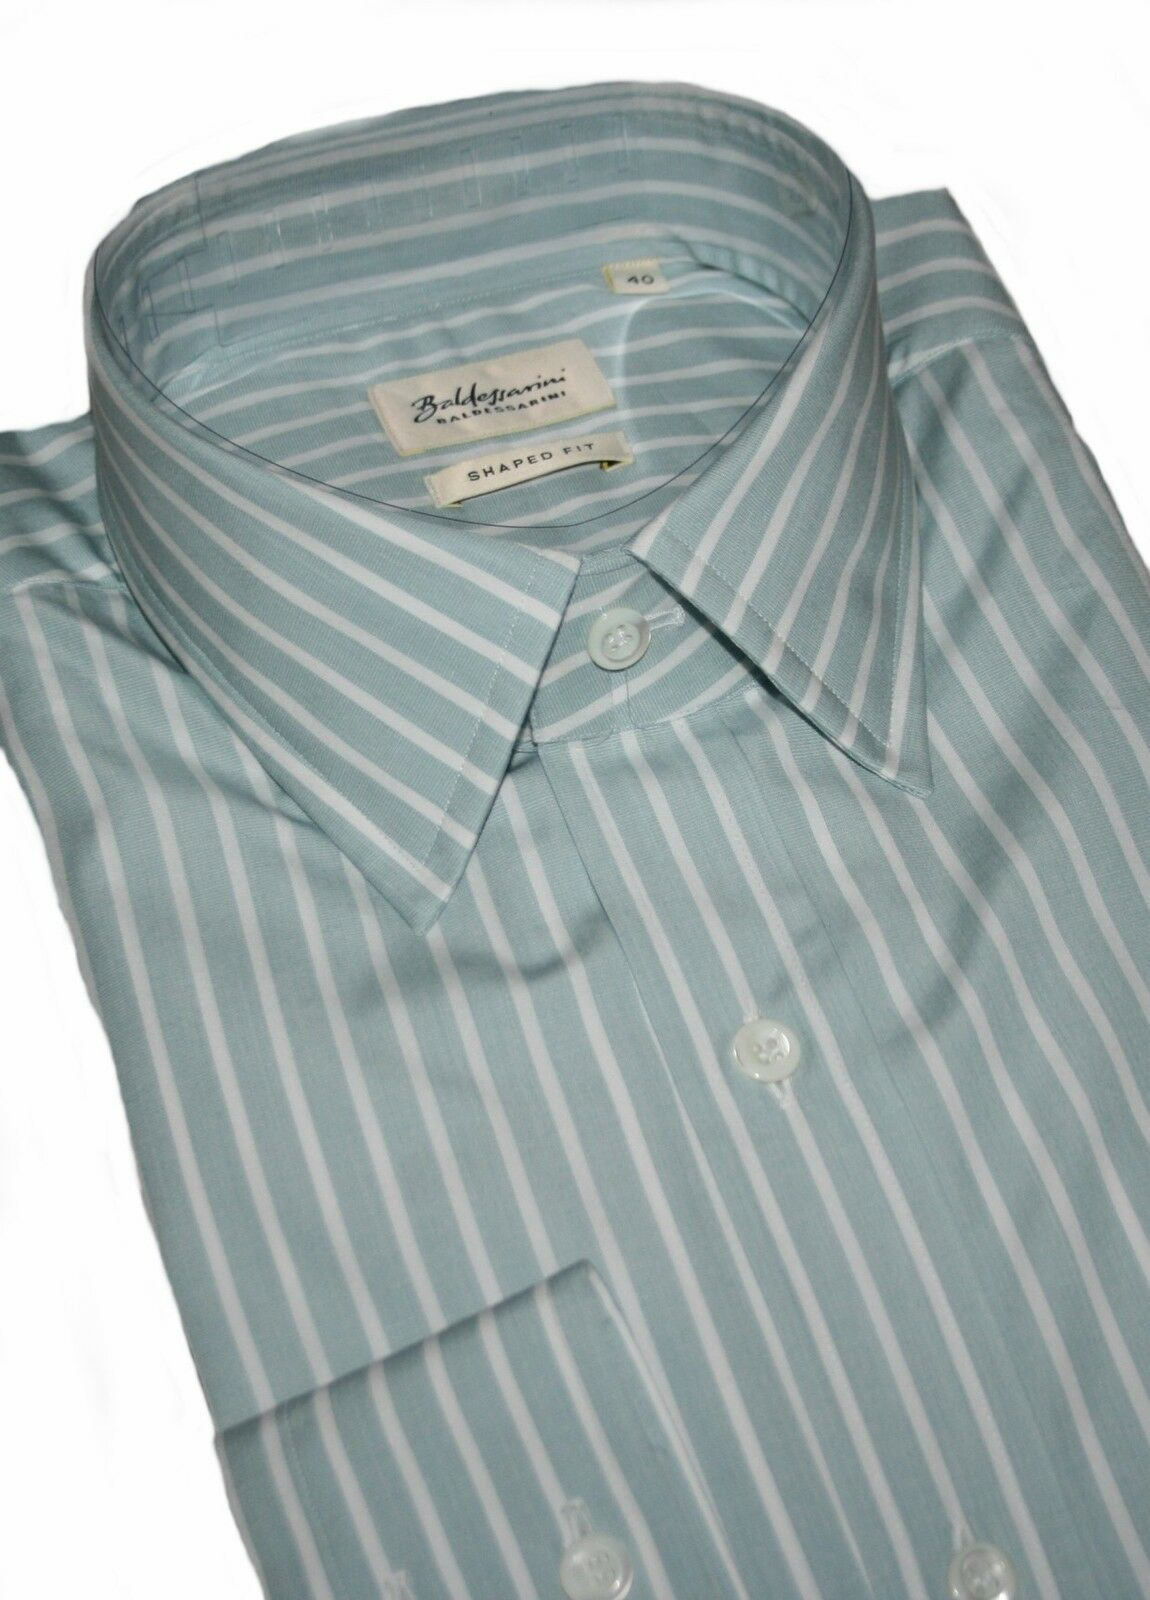 Baldessarini Signature shaped Fit pattern-Camicia kw.40